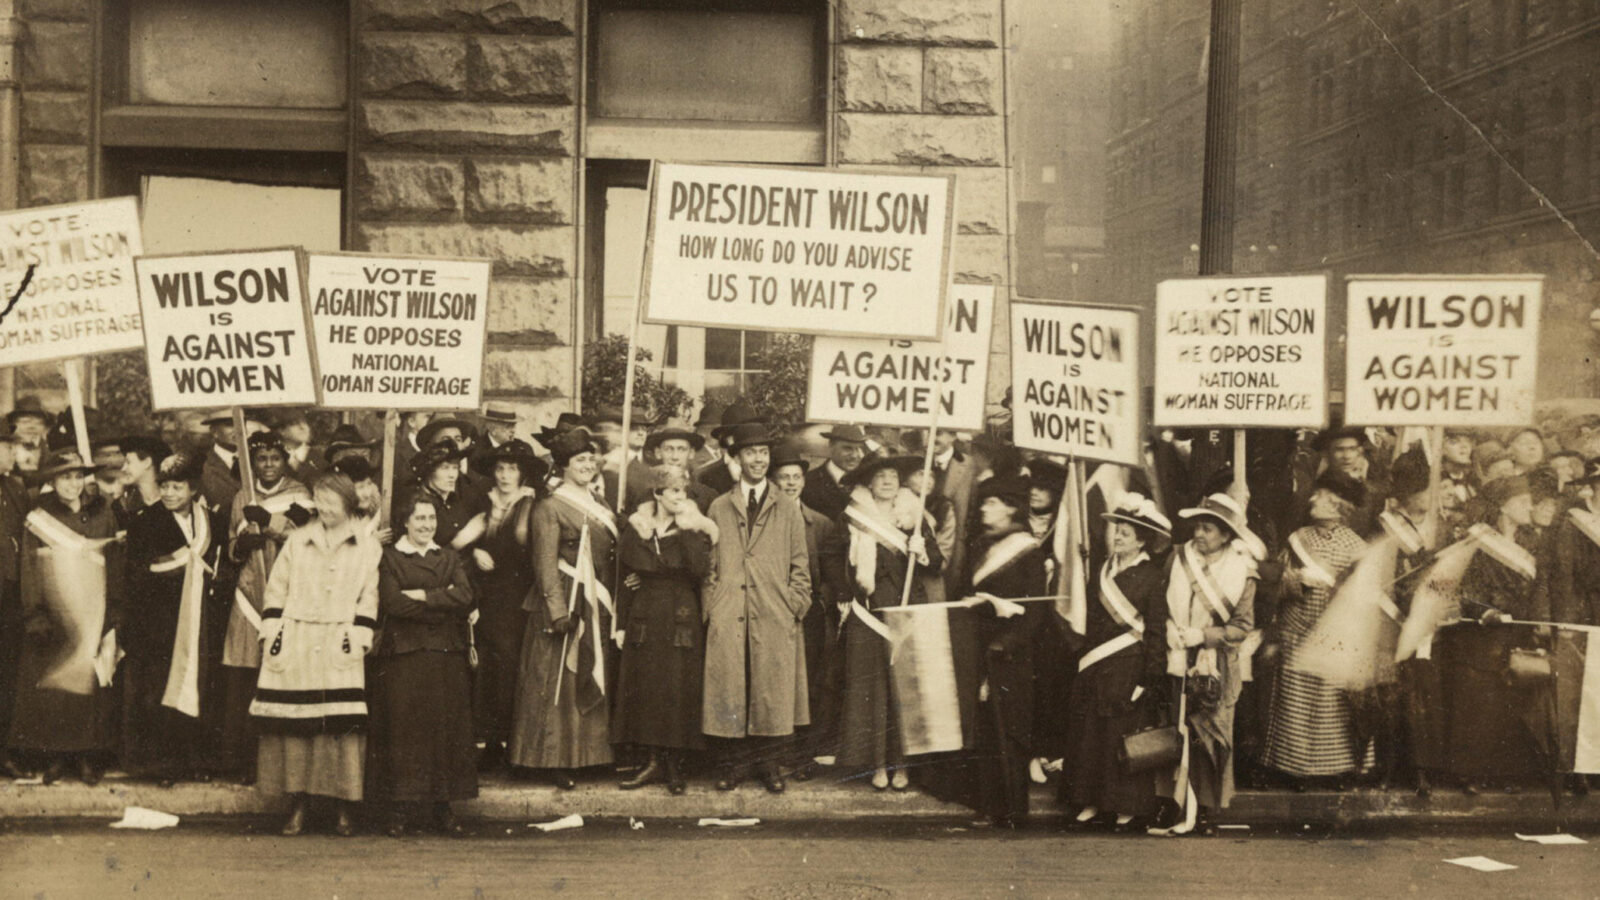 ravinia 2020: women and men protesting for voting rights suffrage 1916 chicago